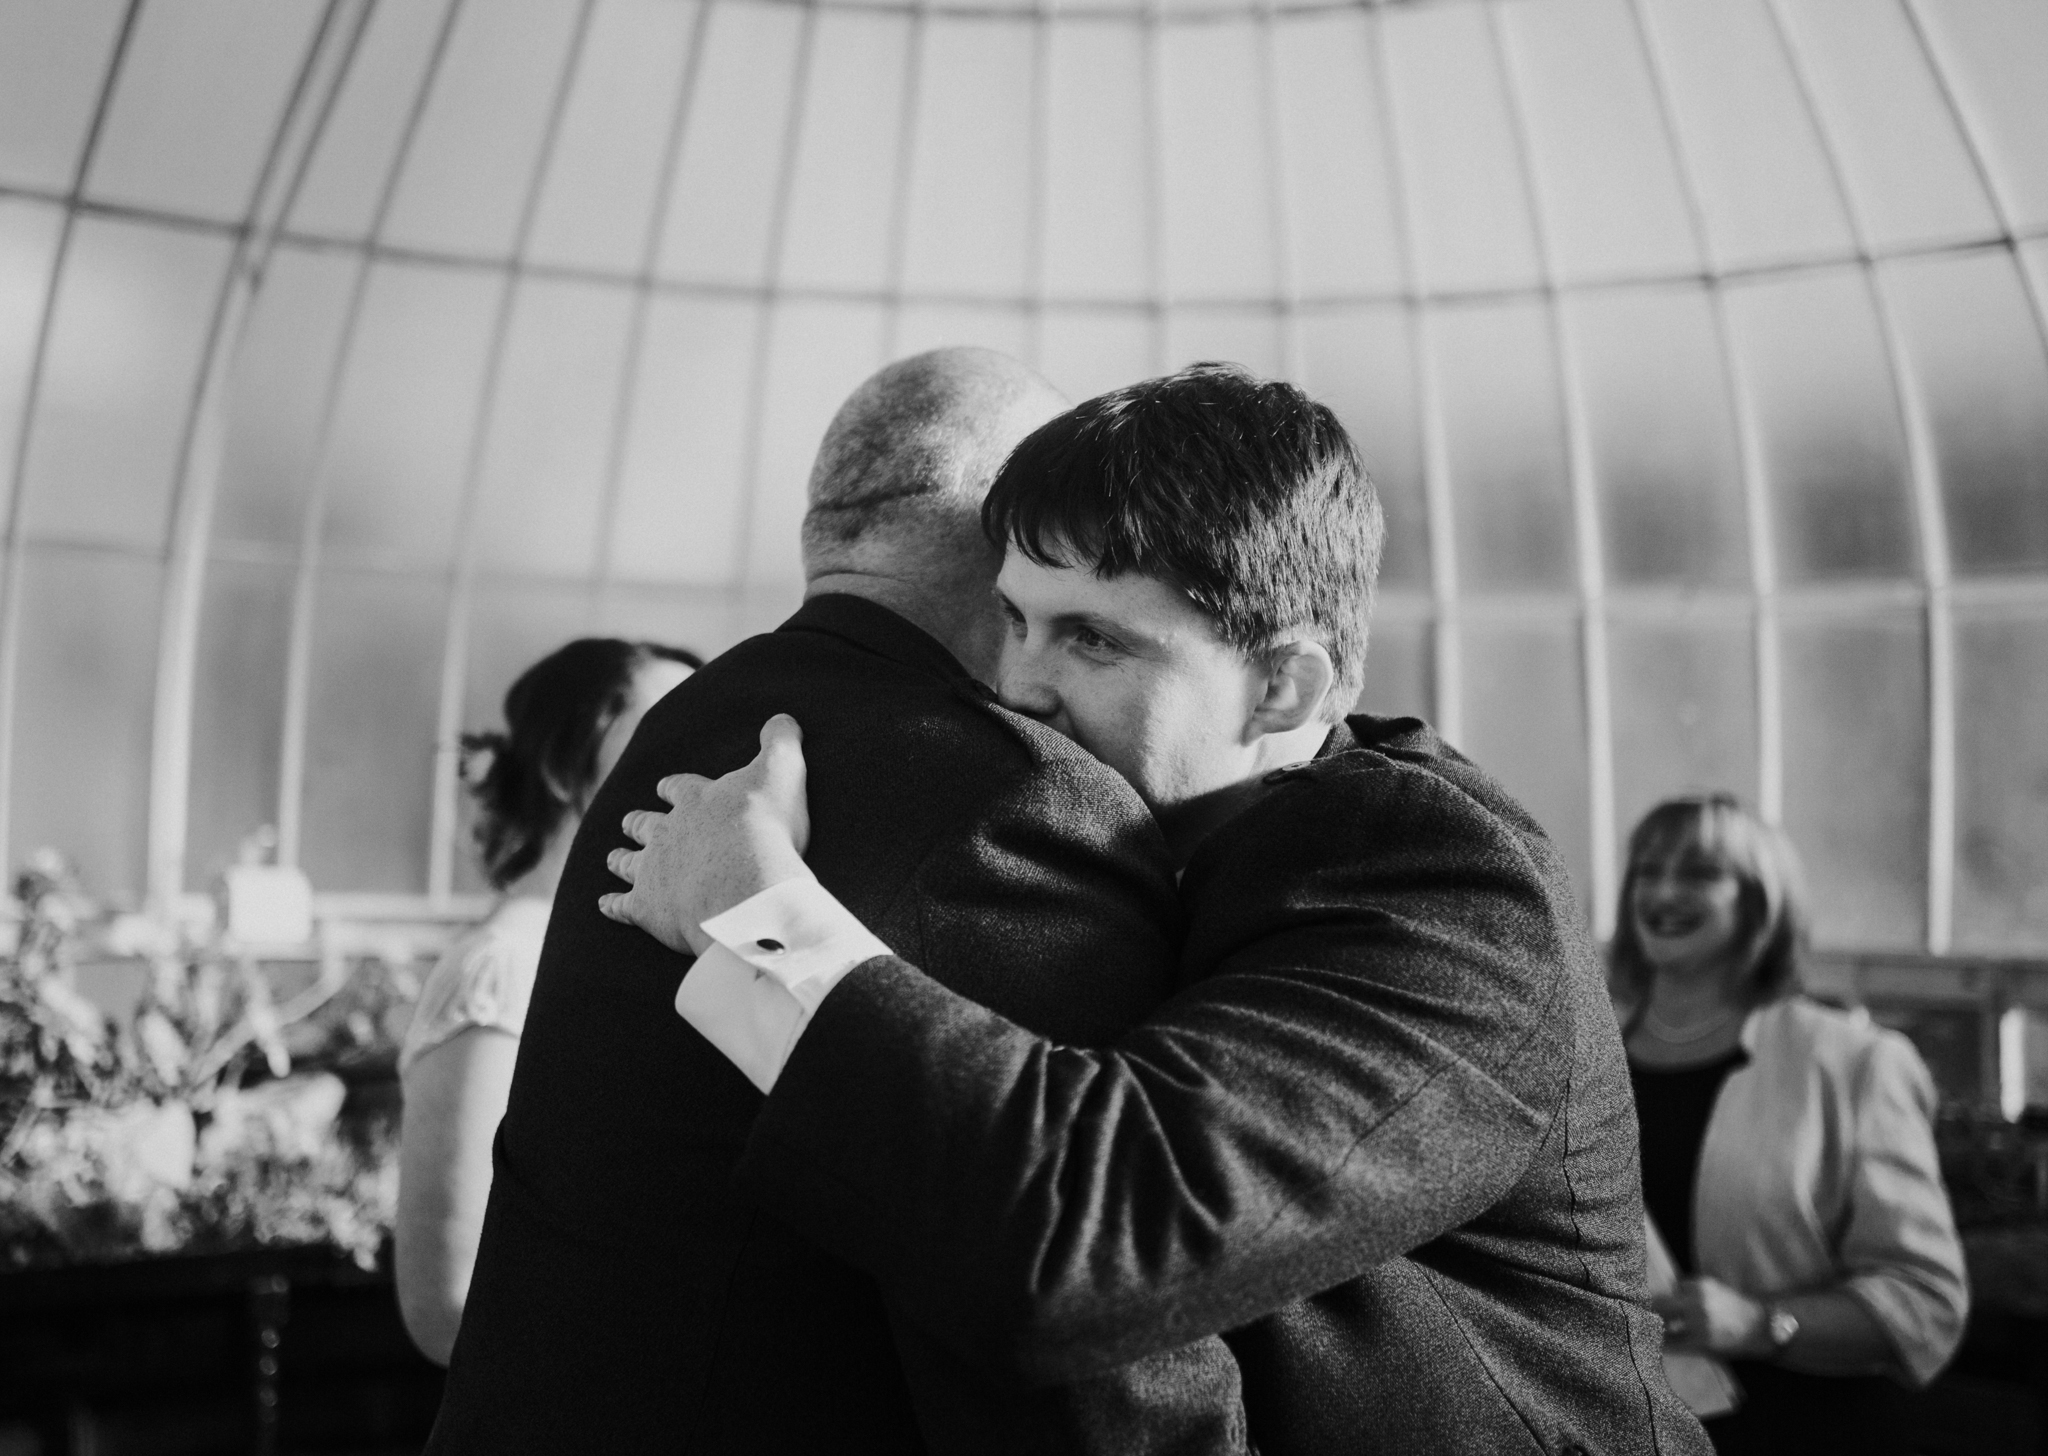 The groom and father of the bride congratulate each other